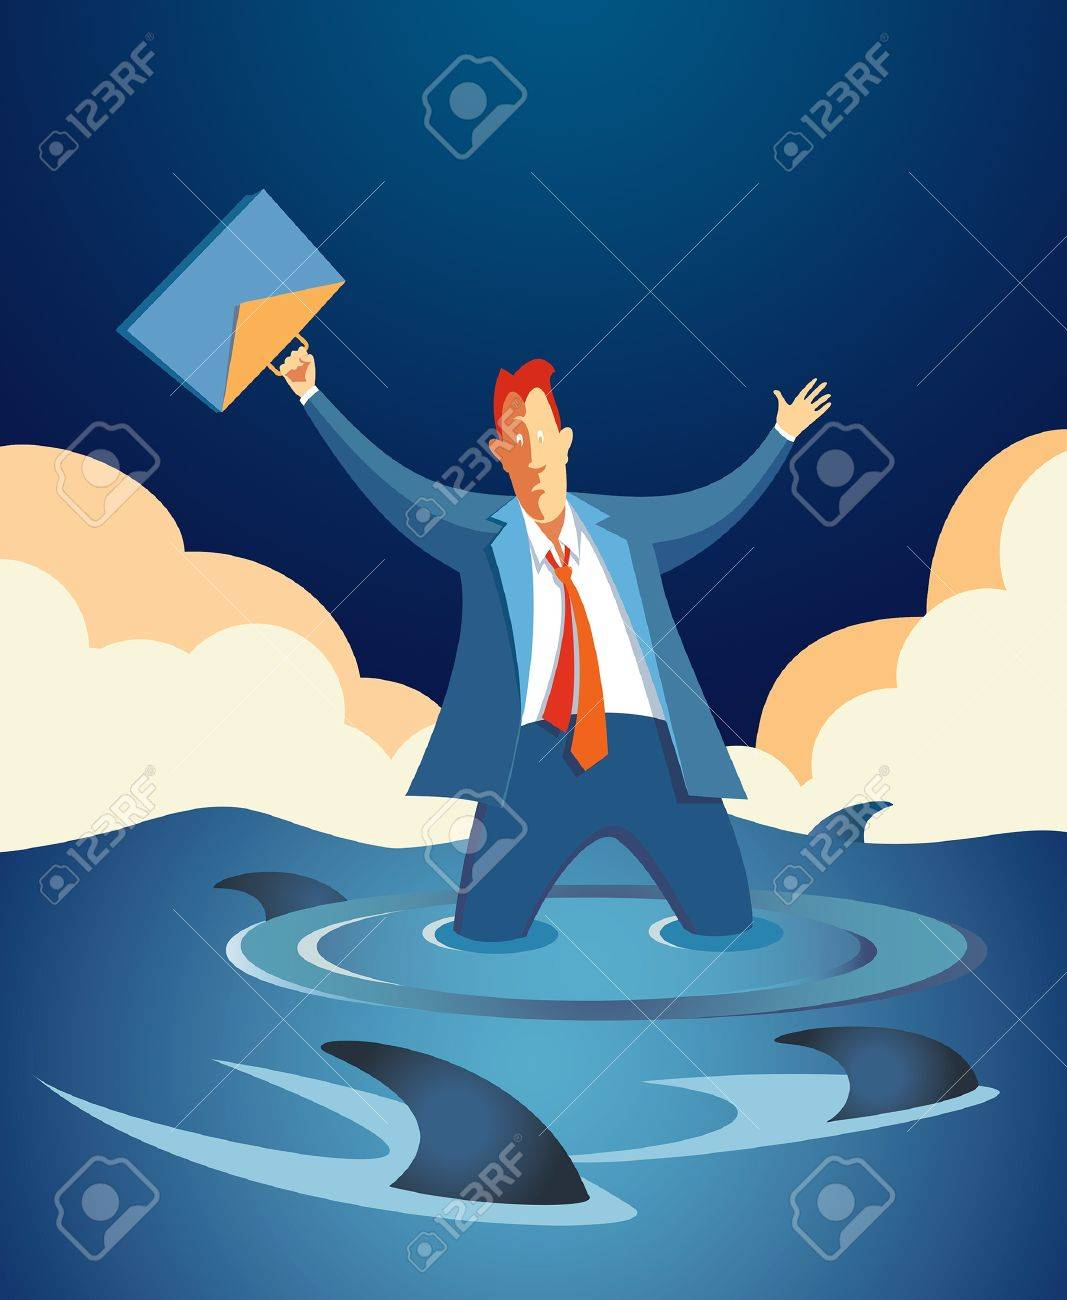 worried businessman holding his briefcase in the air, knee-deep in rising water and surrounded by hungry sharks Stock Vector - 17306724